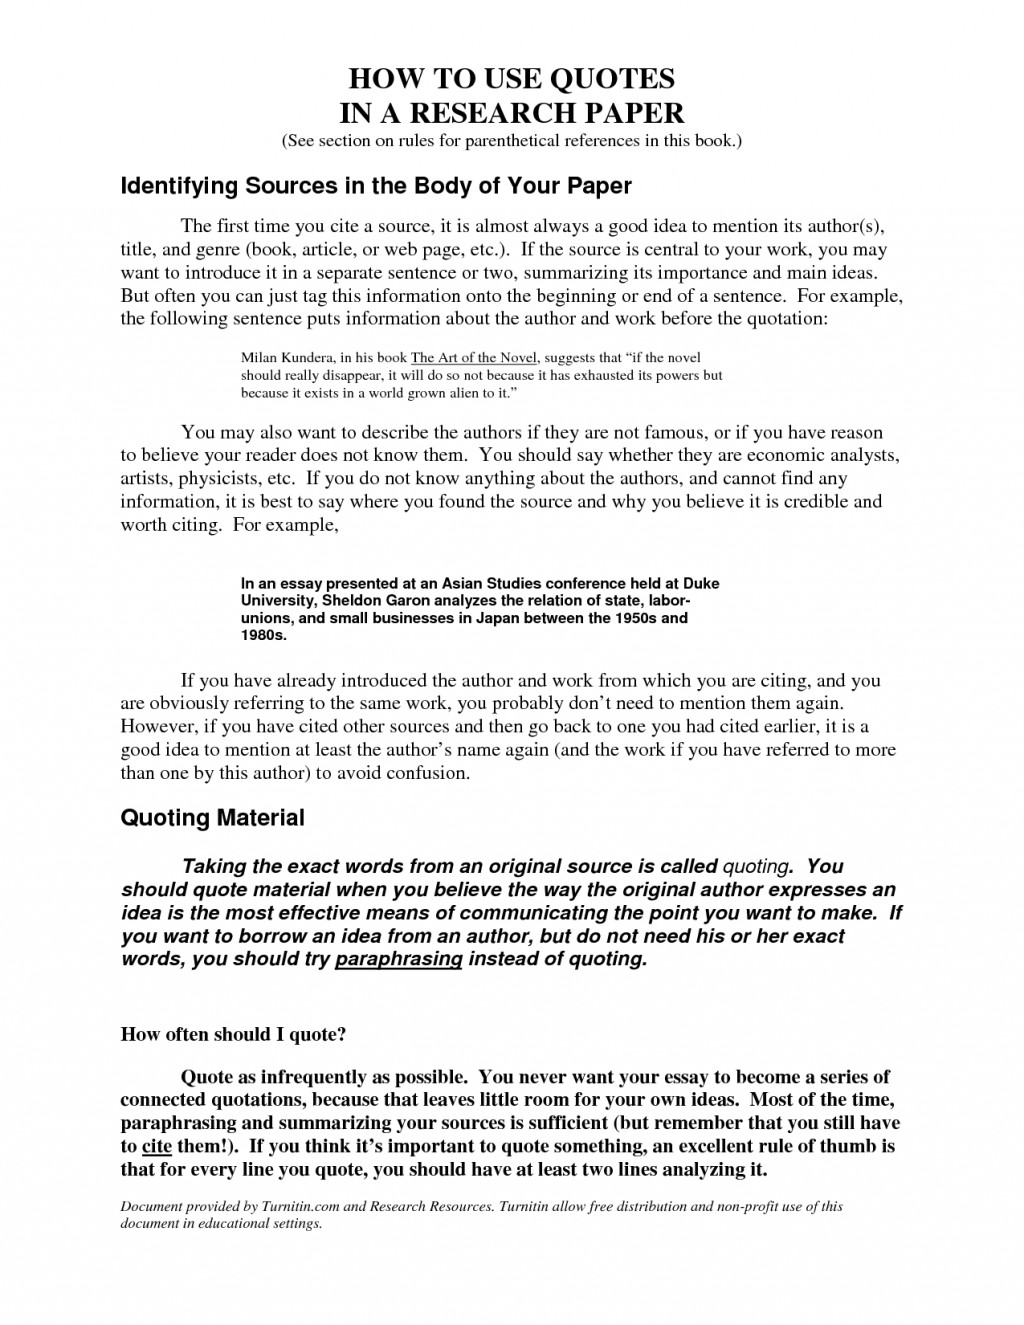 011 Best Solutions Of Writing Quotes In Essays Marvelous Embedding On Quotestopics Essay Example How To Quote Book Formidable A An Apa Style With Multiple Authors Large